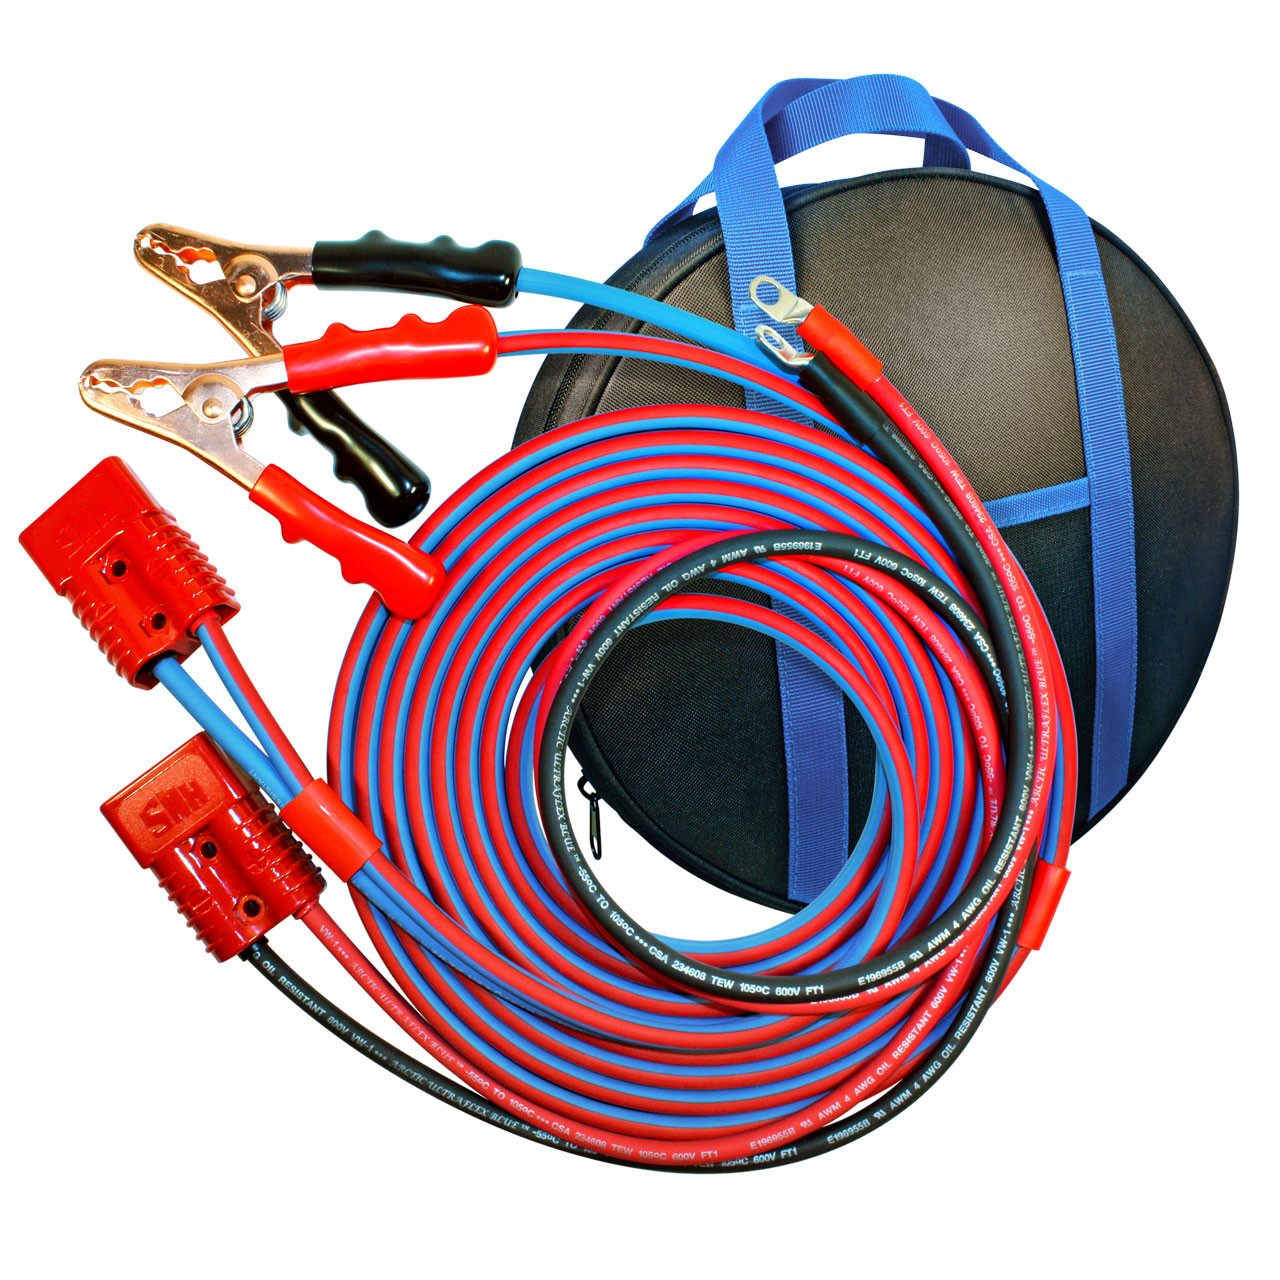 20' Cold Weather Premium Jumper Cable, Clamp to Harness, 4 AWG Booster System